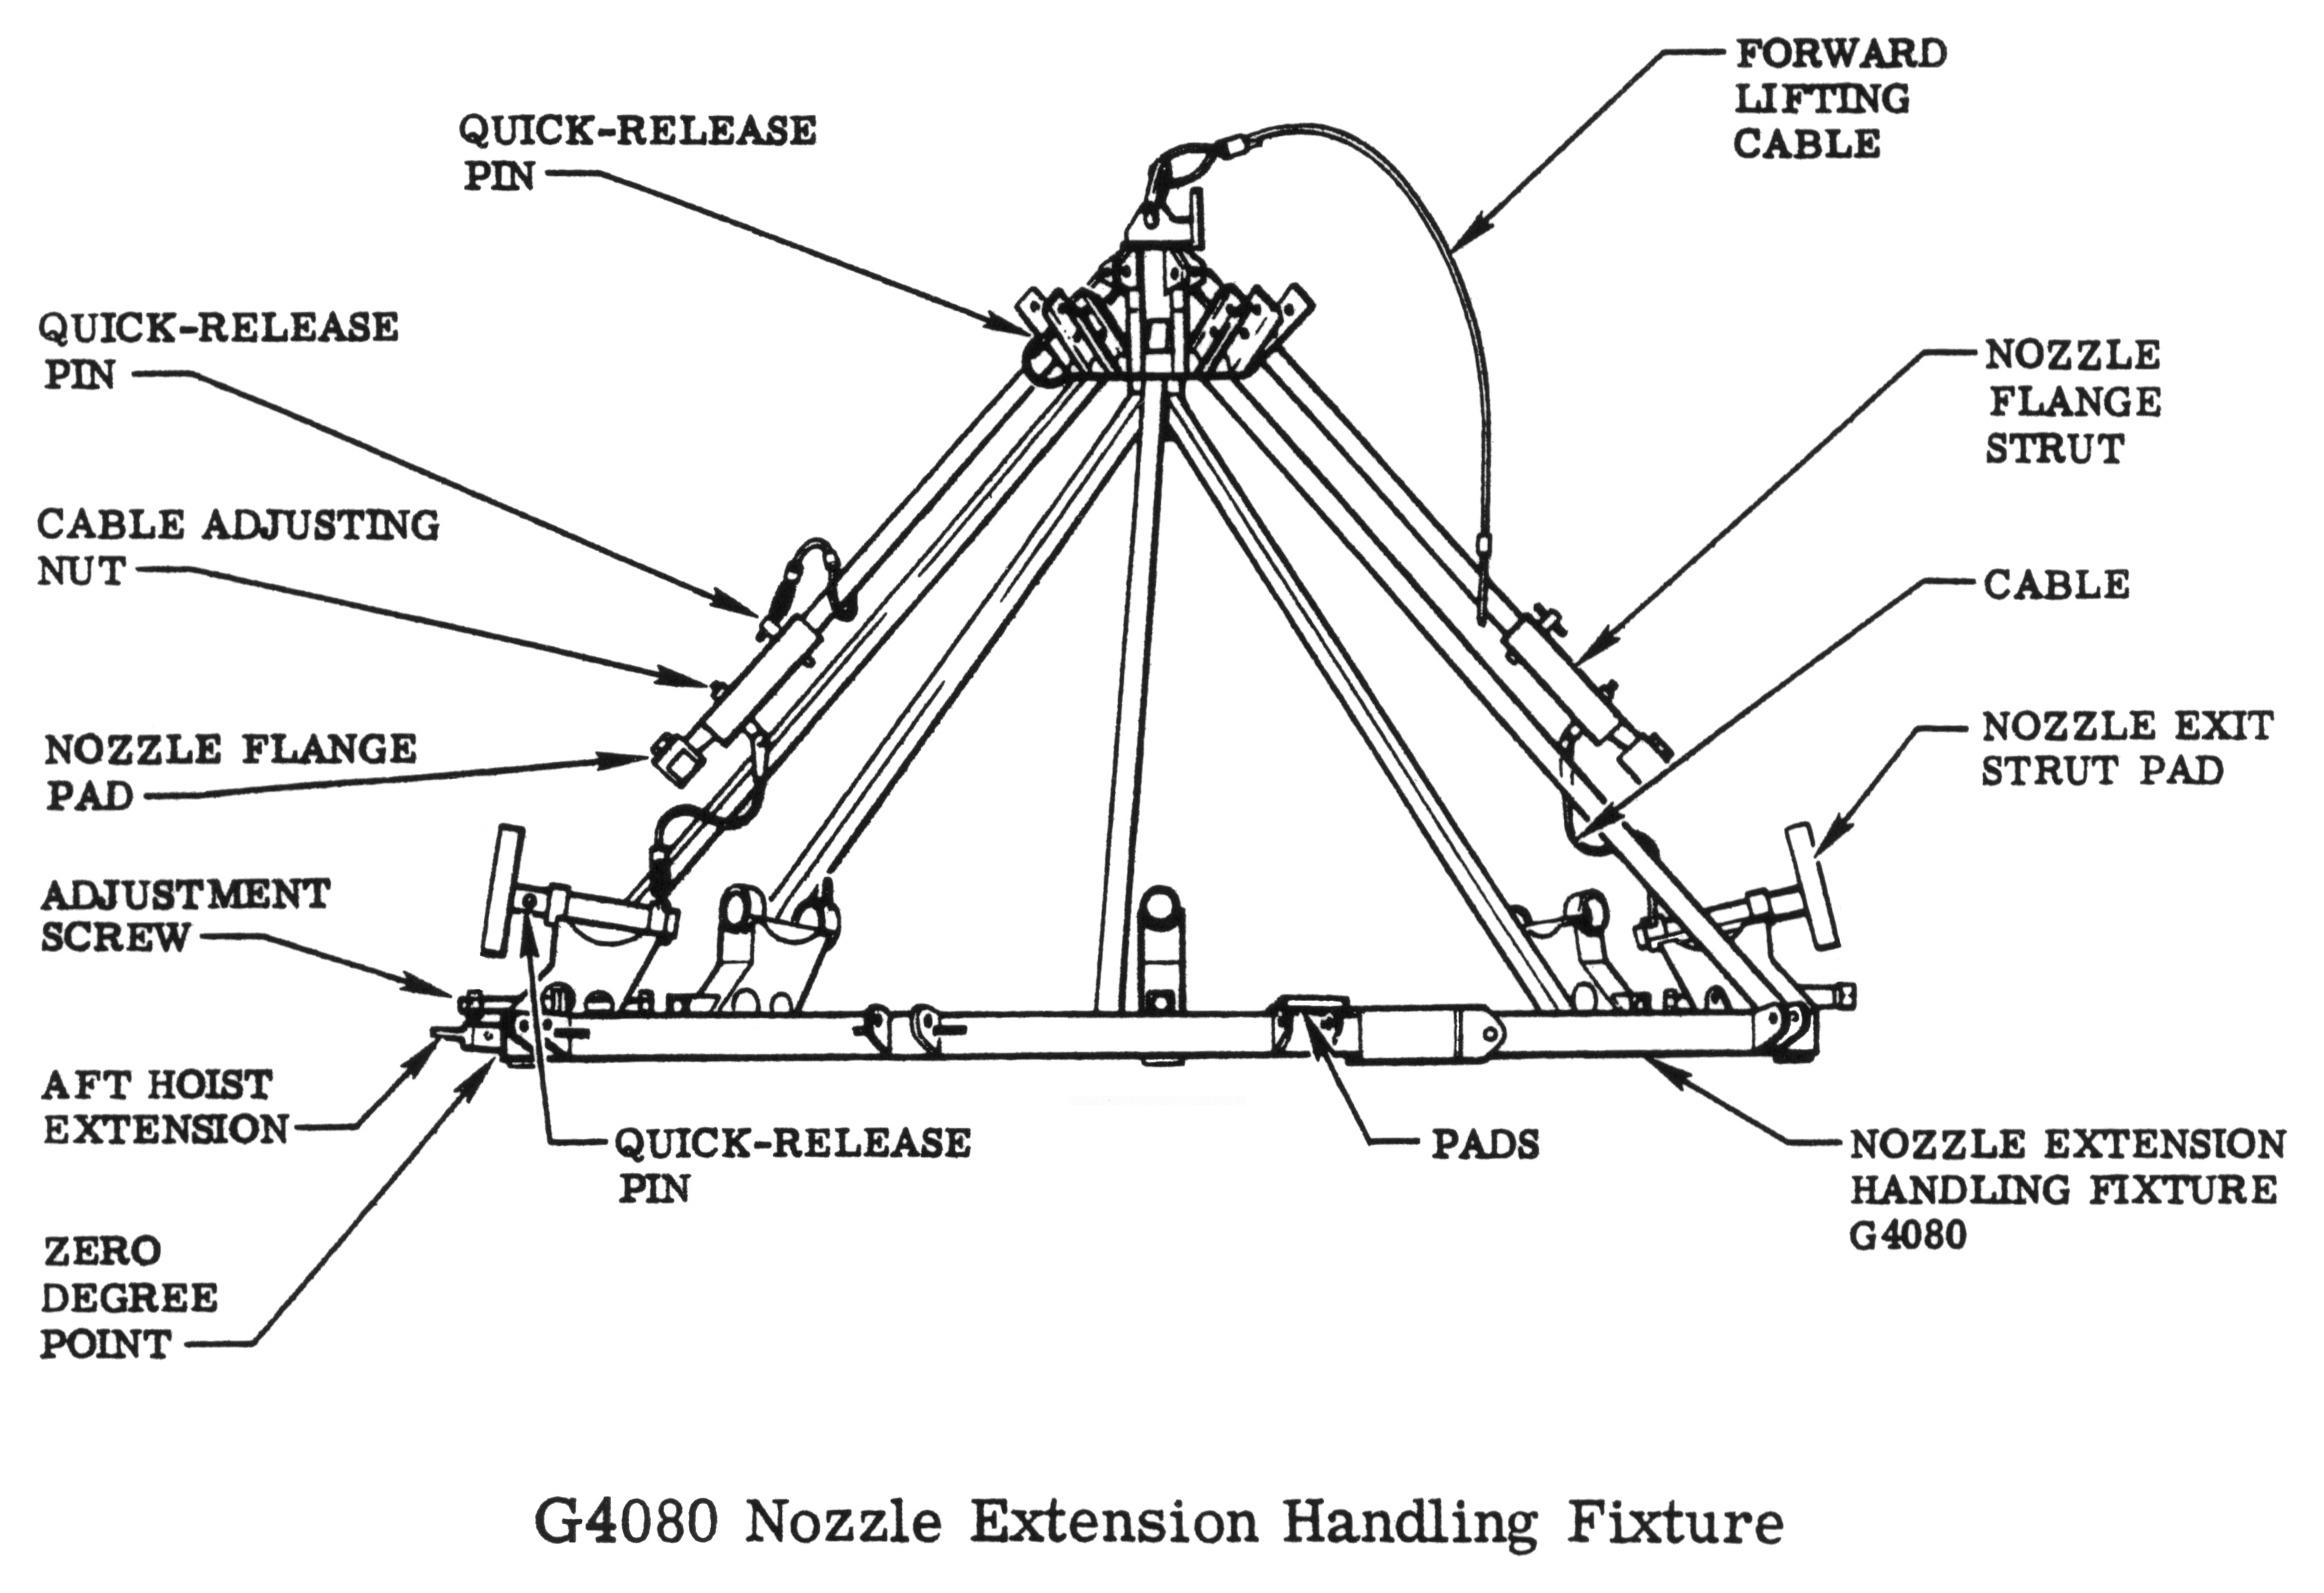 F 1 Engine G Nozzle Extension Handling Fixture